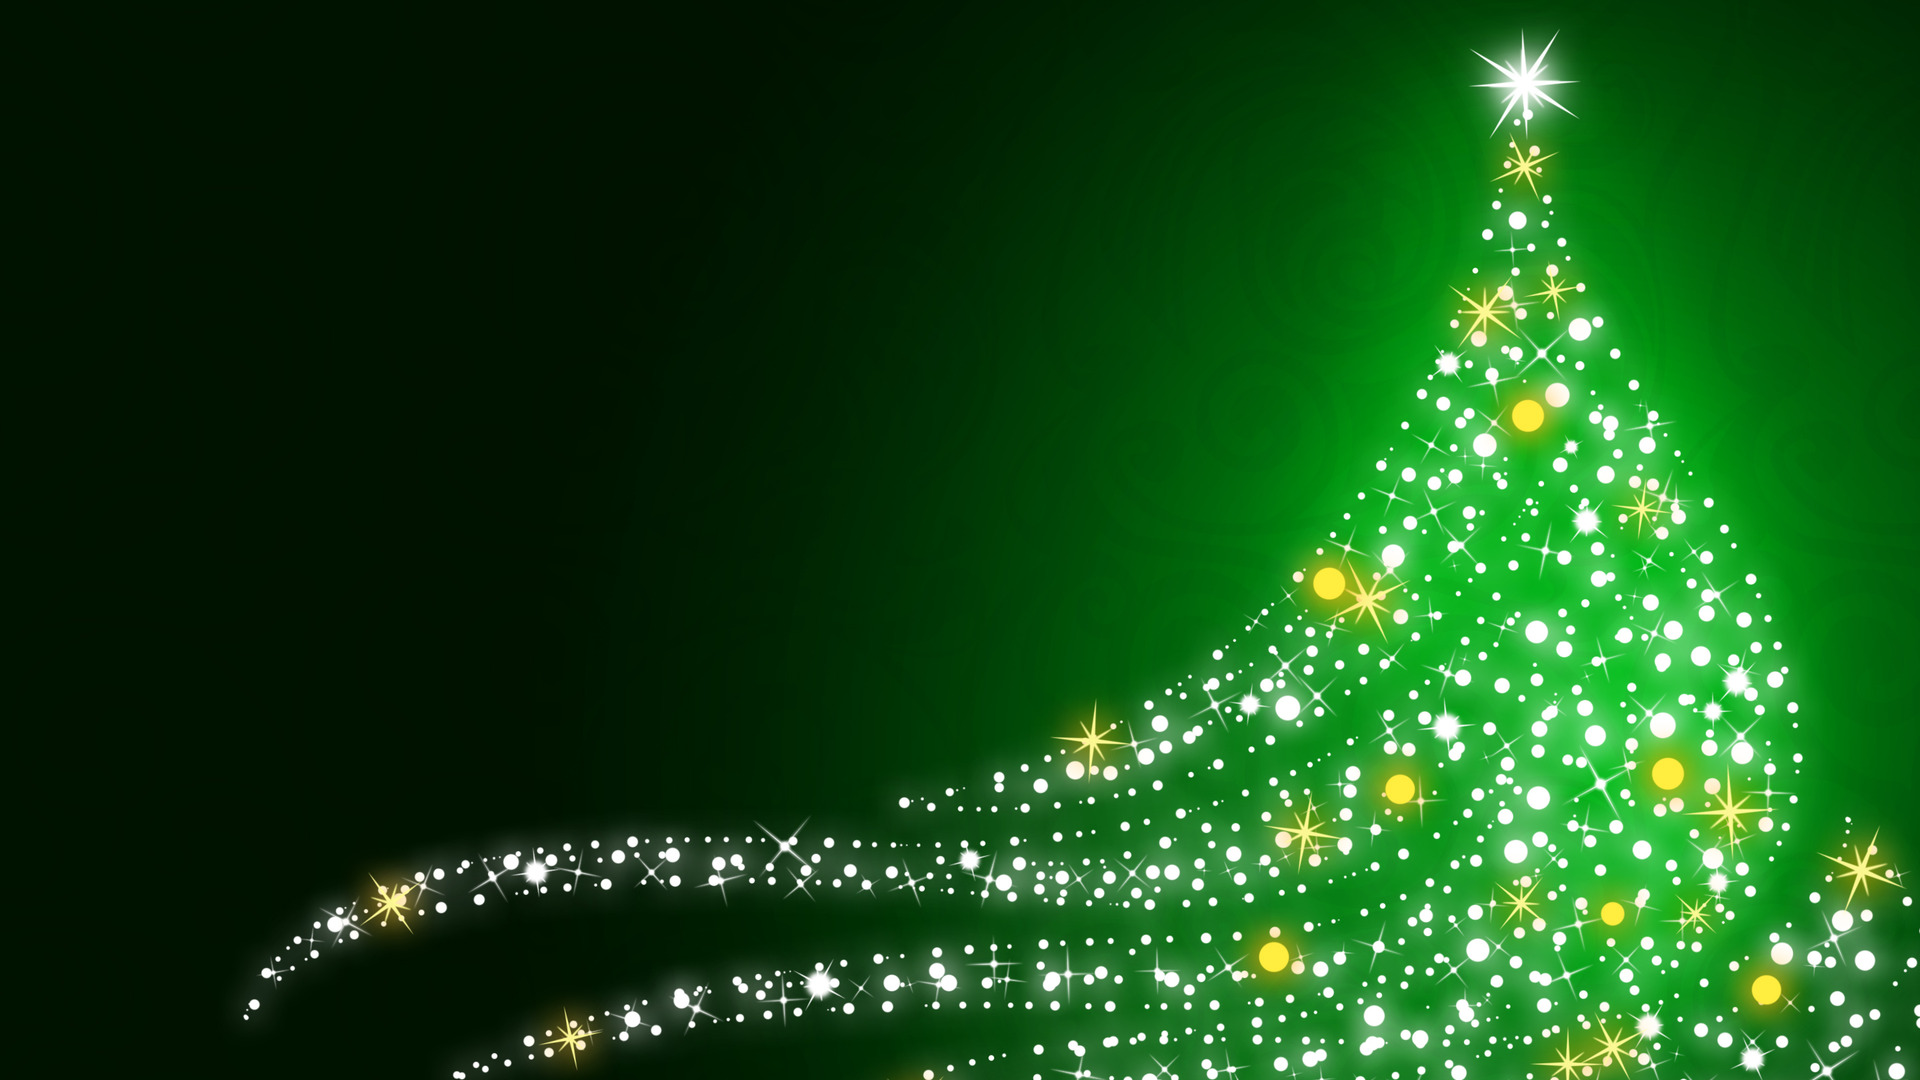 48 hd free christmas wallpapers for download for Screensaver natale 3d